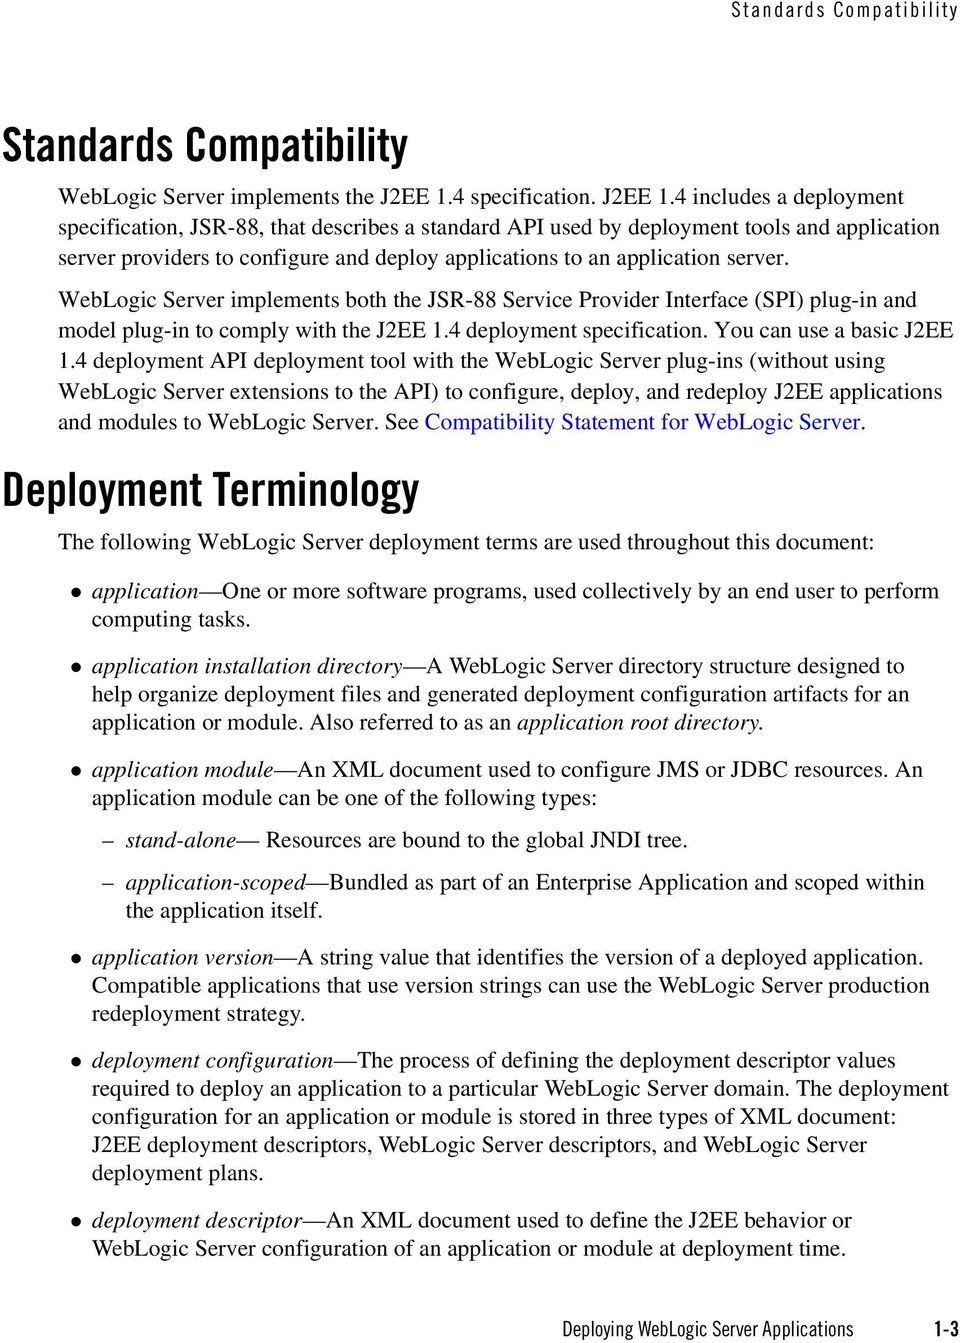 4 includes a deployment specification, JSR-88, that describes a standard API used by deployment tools and application server providers to configure and deploy applications to an application server.